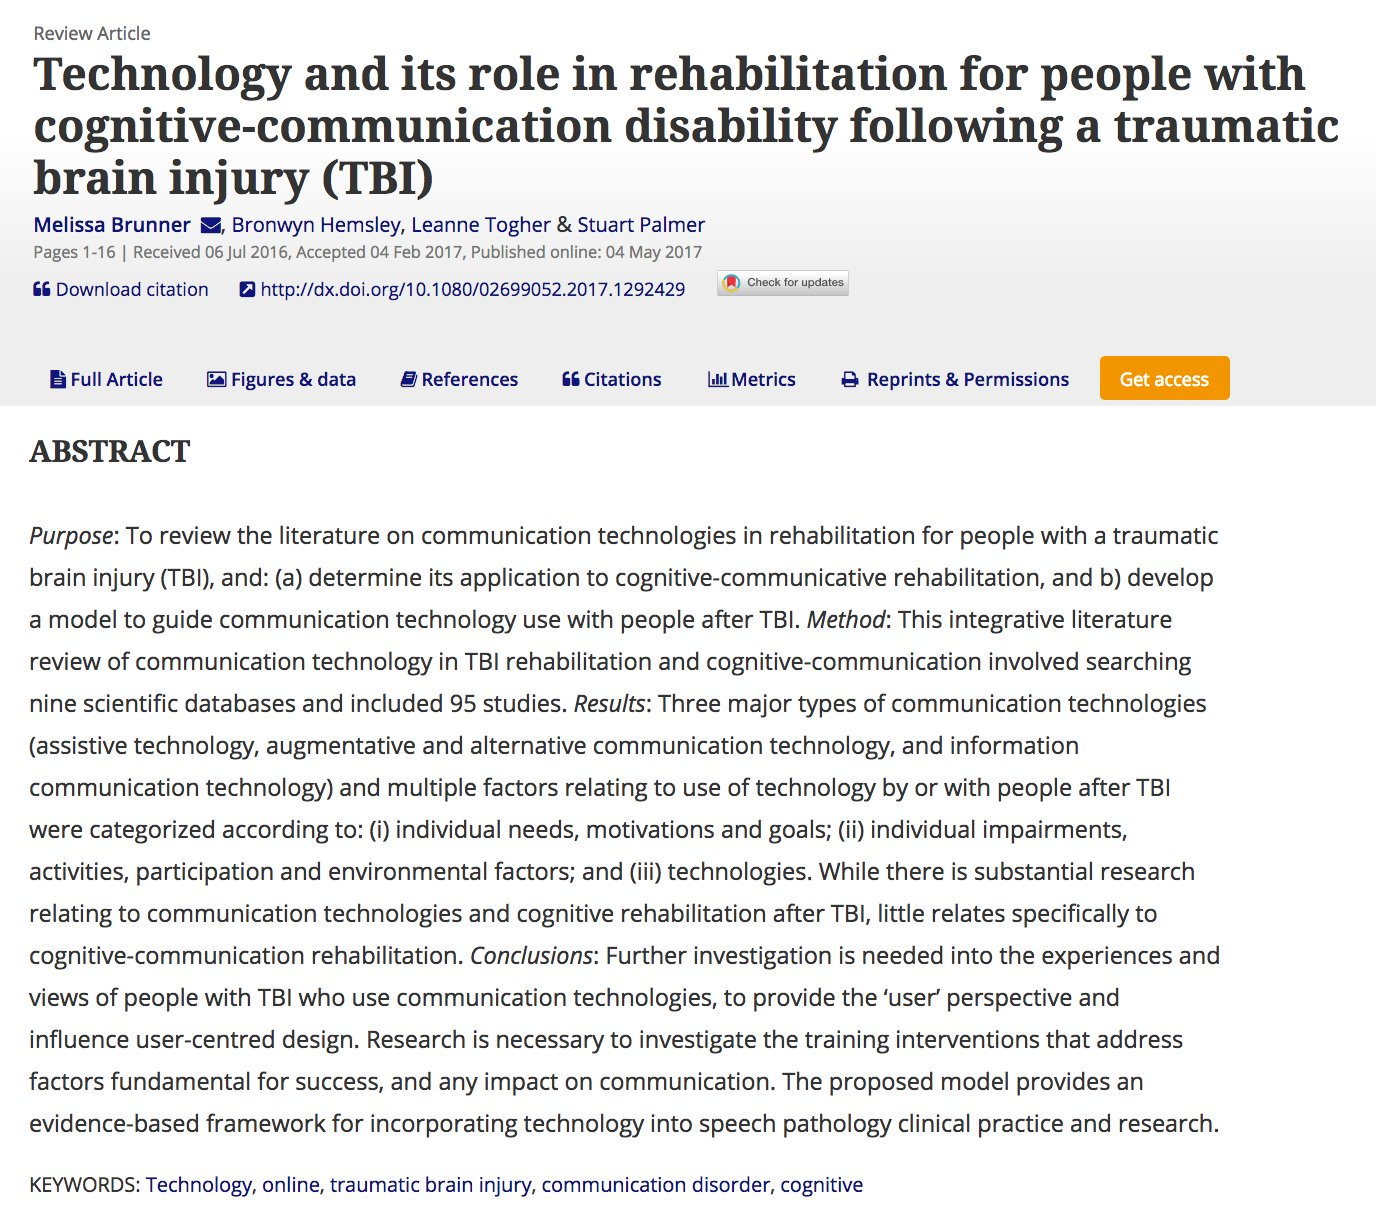 I've got 50 free online copies of our tech in rehab after #TBI article to share #WeSpeechies #slpeeps #slp2bs: https://t.co/QN9HHd1Jcr https://t.co/ViDKoHfI7a